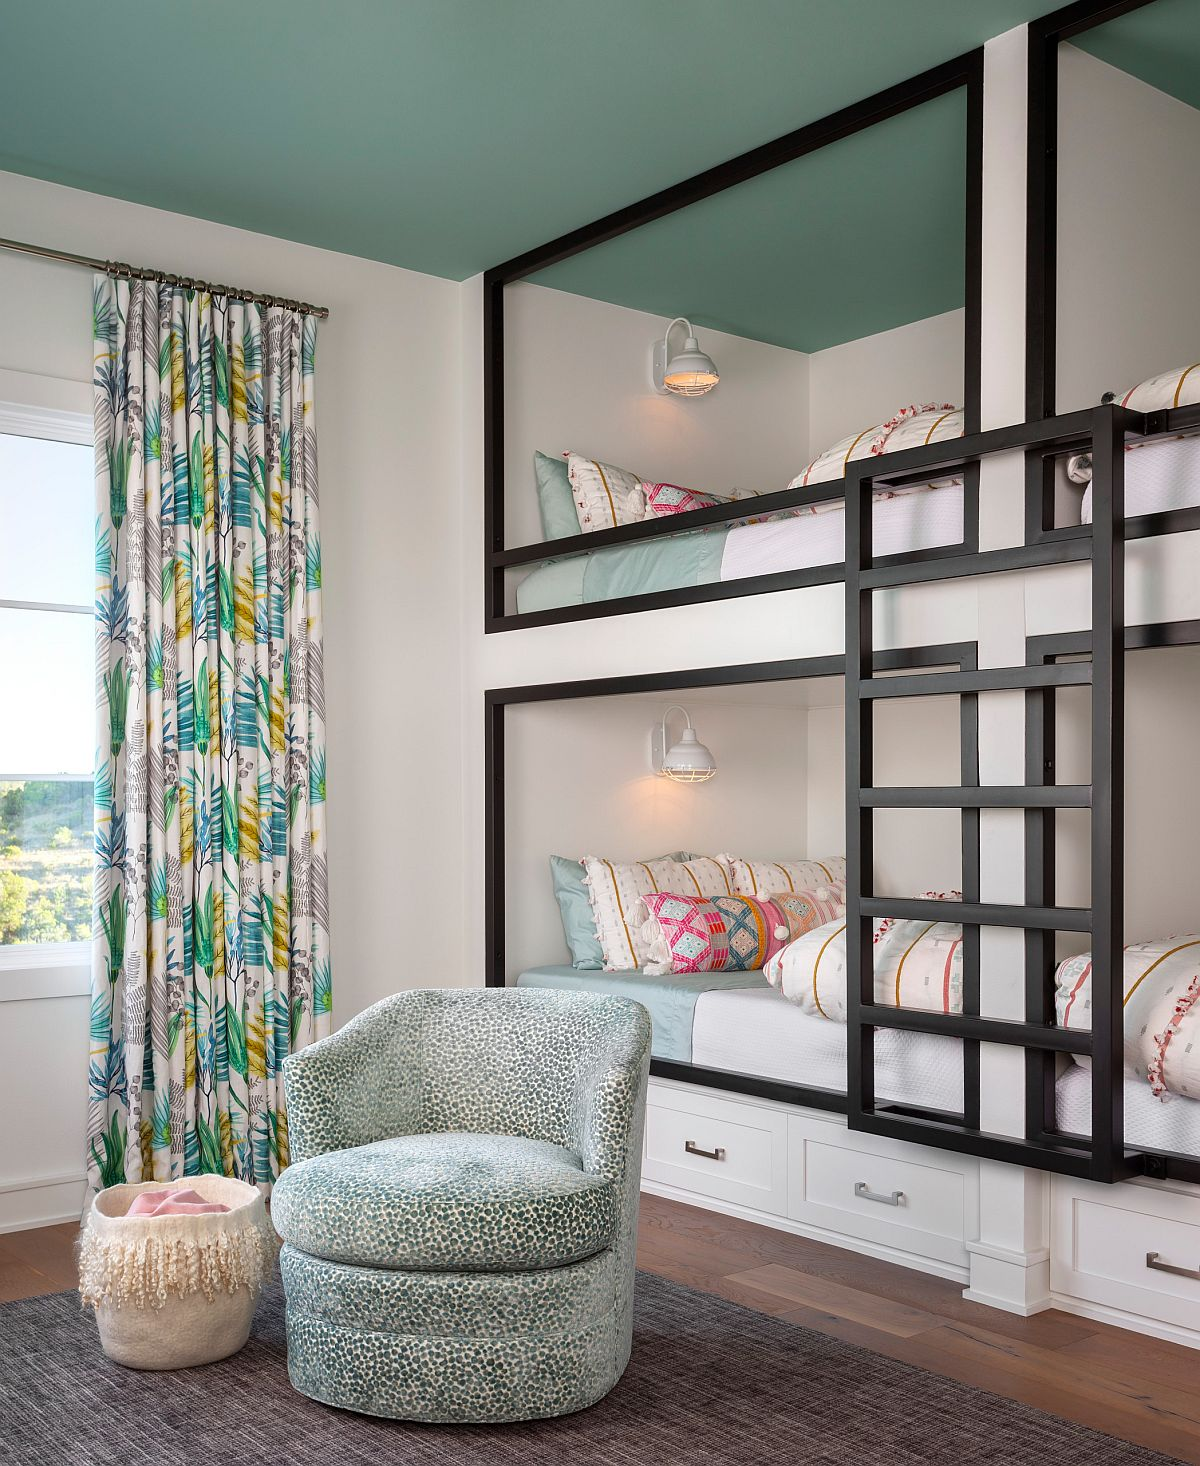 Wall-of-bunk-beds-is-the-perfect-way-to-add-additional-sleeping-space-in-the-kids-room-84717